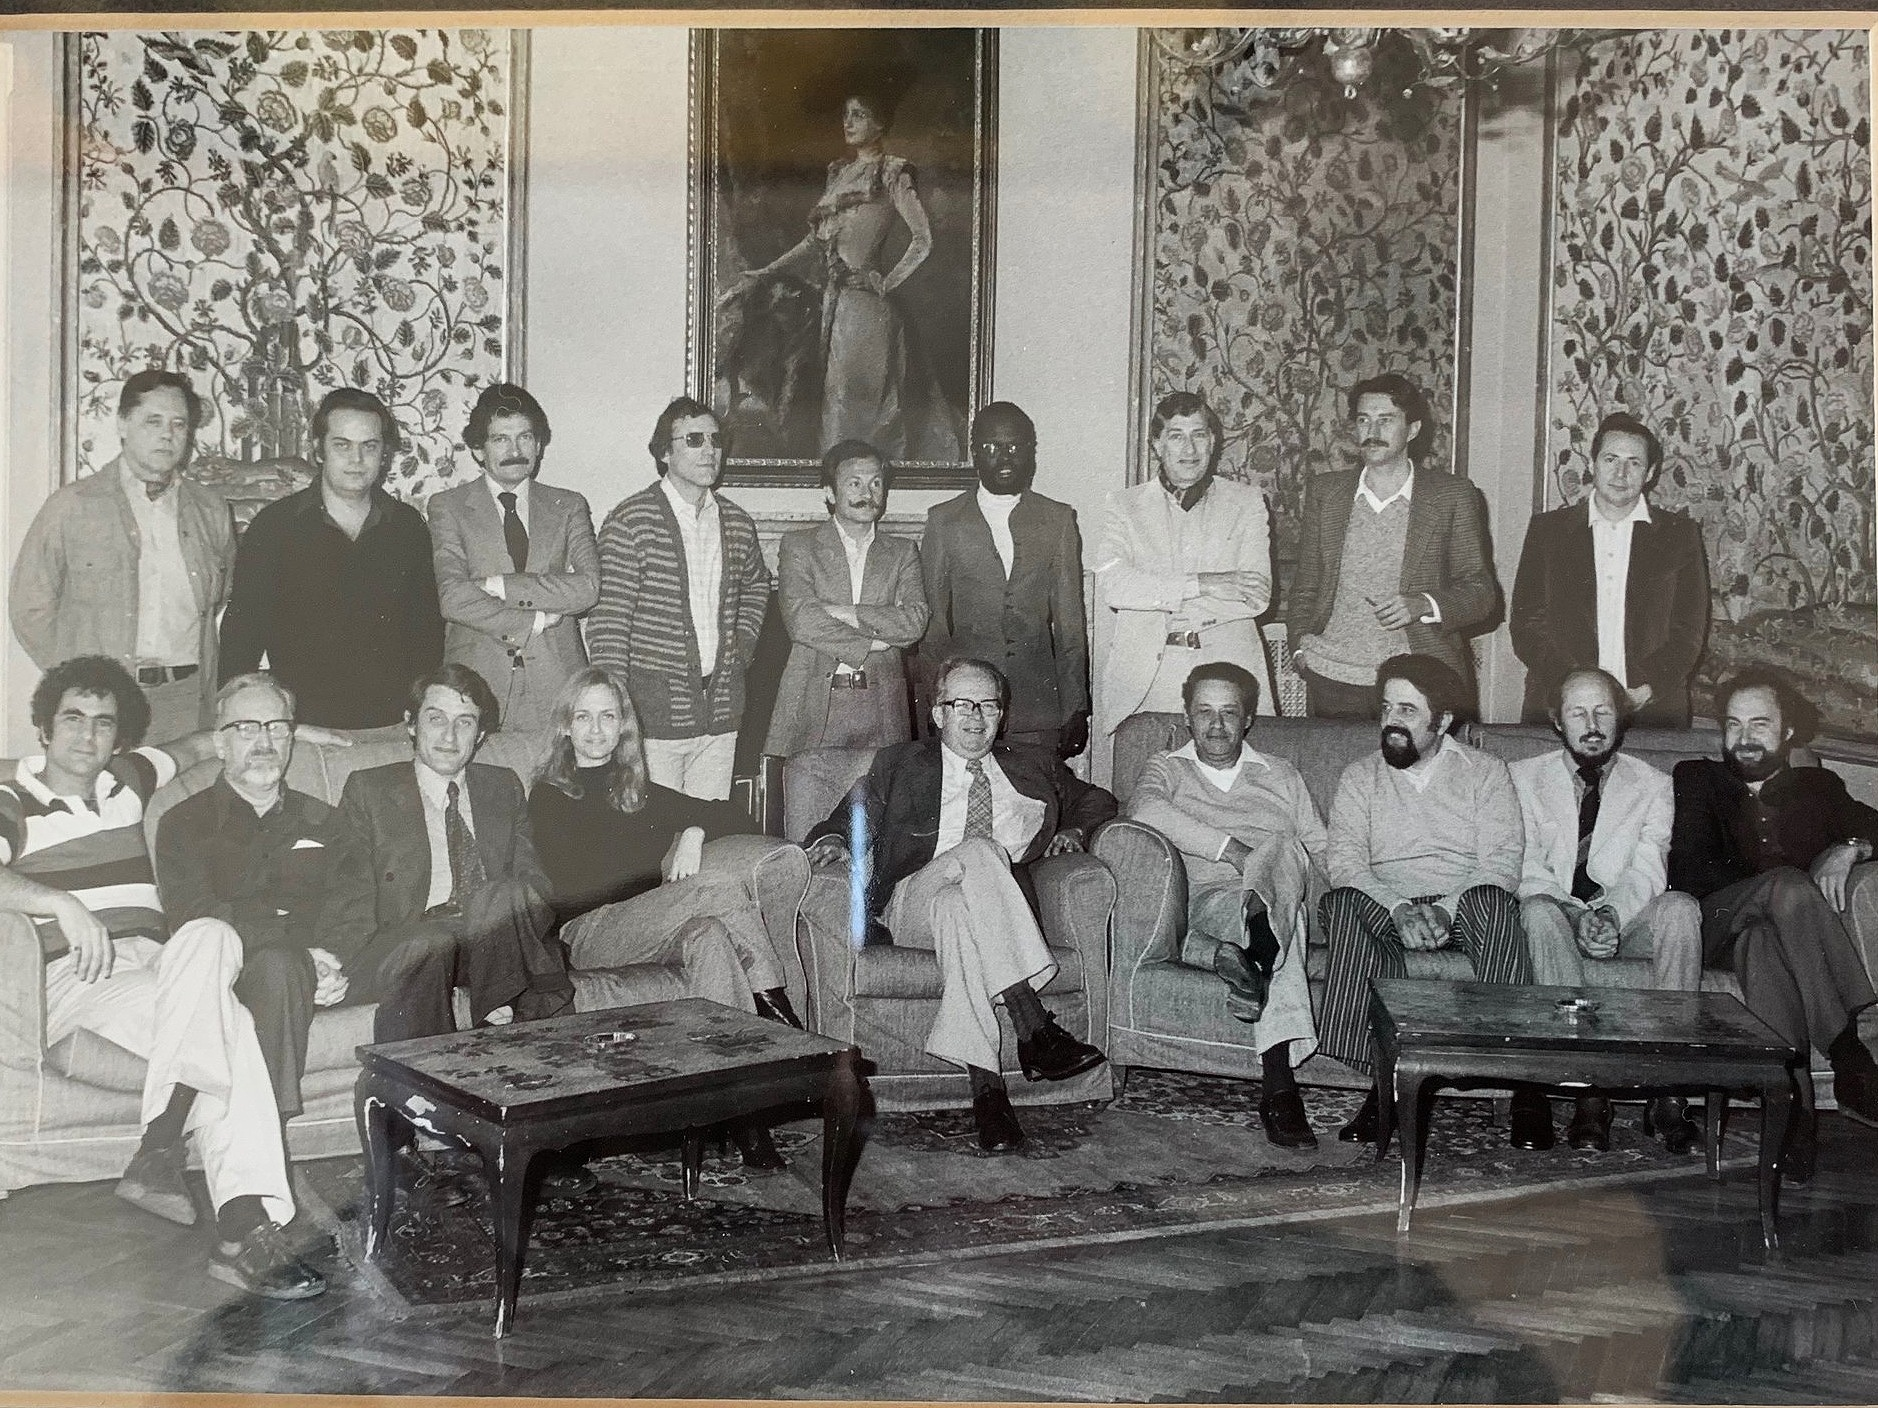 Research Committee 02 on Economy and Society founded in 1978 with the fusion of ISA Working Group 7, 'Industrial Leadership, Entrepreneurship and Economic Development and ISA Ad Hoc Group on Economy and Society. Economy and Society First International Conference held at Villa Serbelloni in Bellagio (May 1979). For a list of participants see the end of the article.